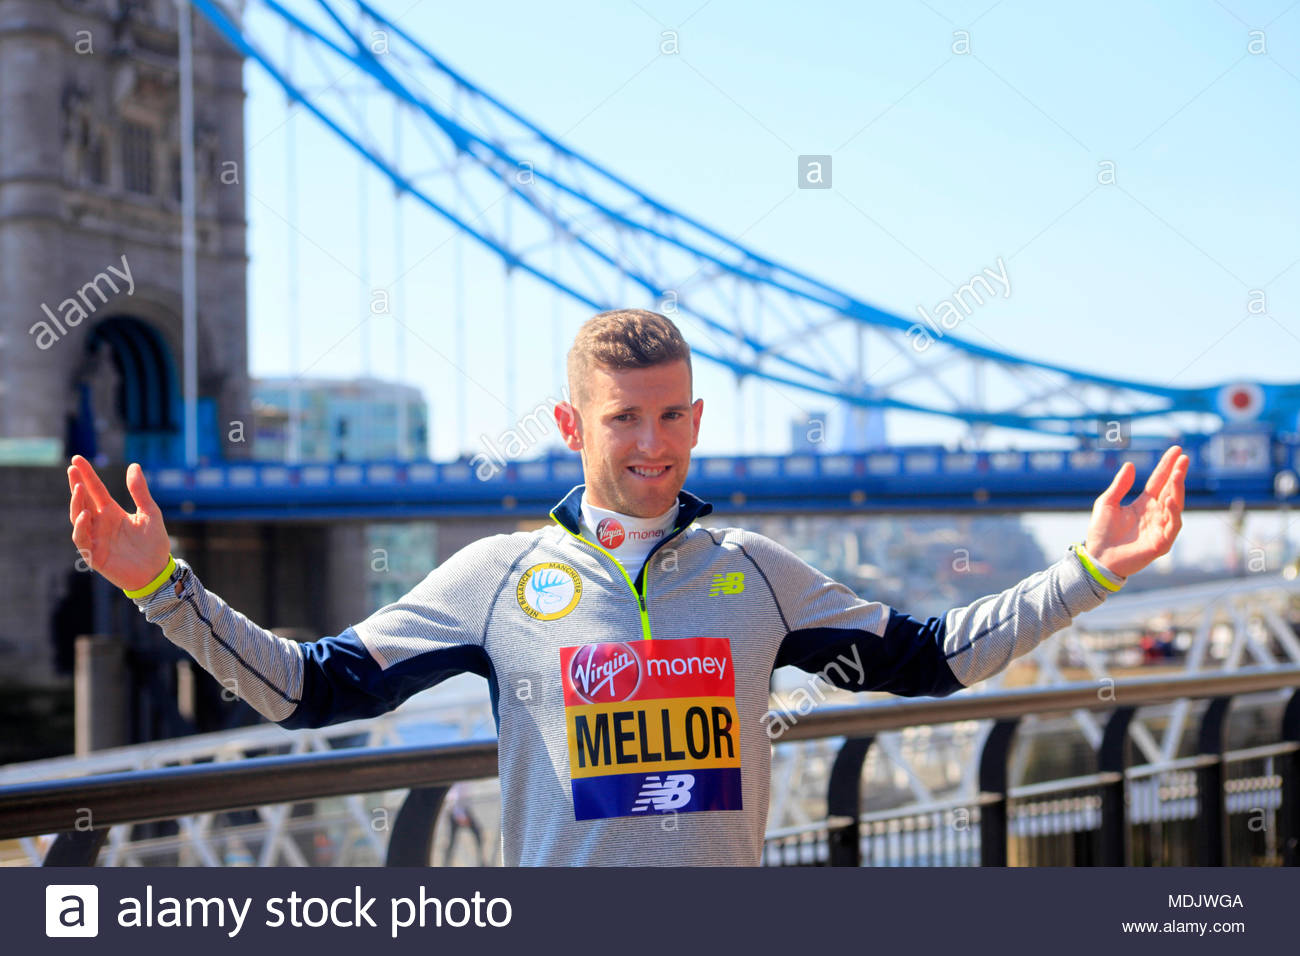 Tower Hotel, London, UK. 19th April 2018 .  Jonny Mellow (GBR) during a press photocall ahead of the Virgin Money London Marathon. Credit: Ng'ang'a/Alamy Live News. Stock Photo